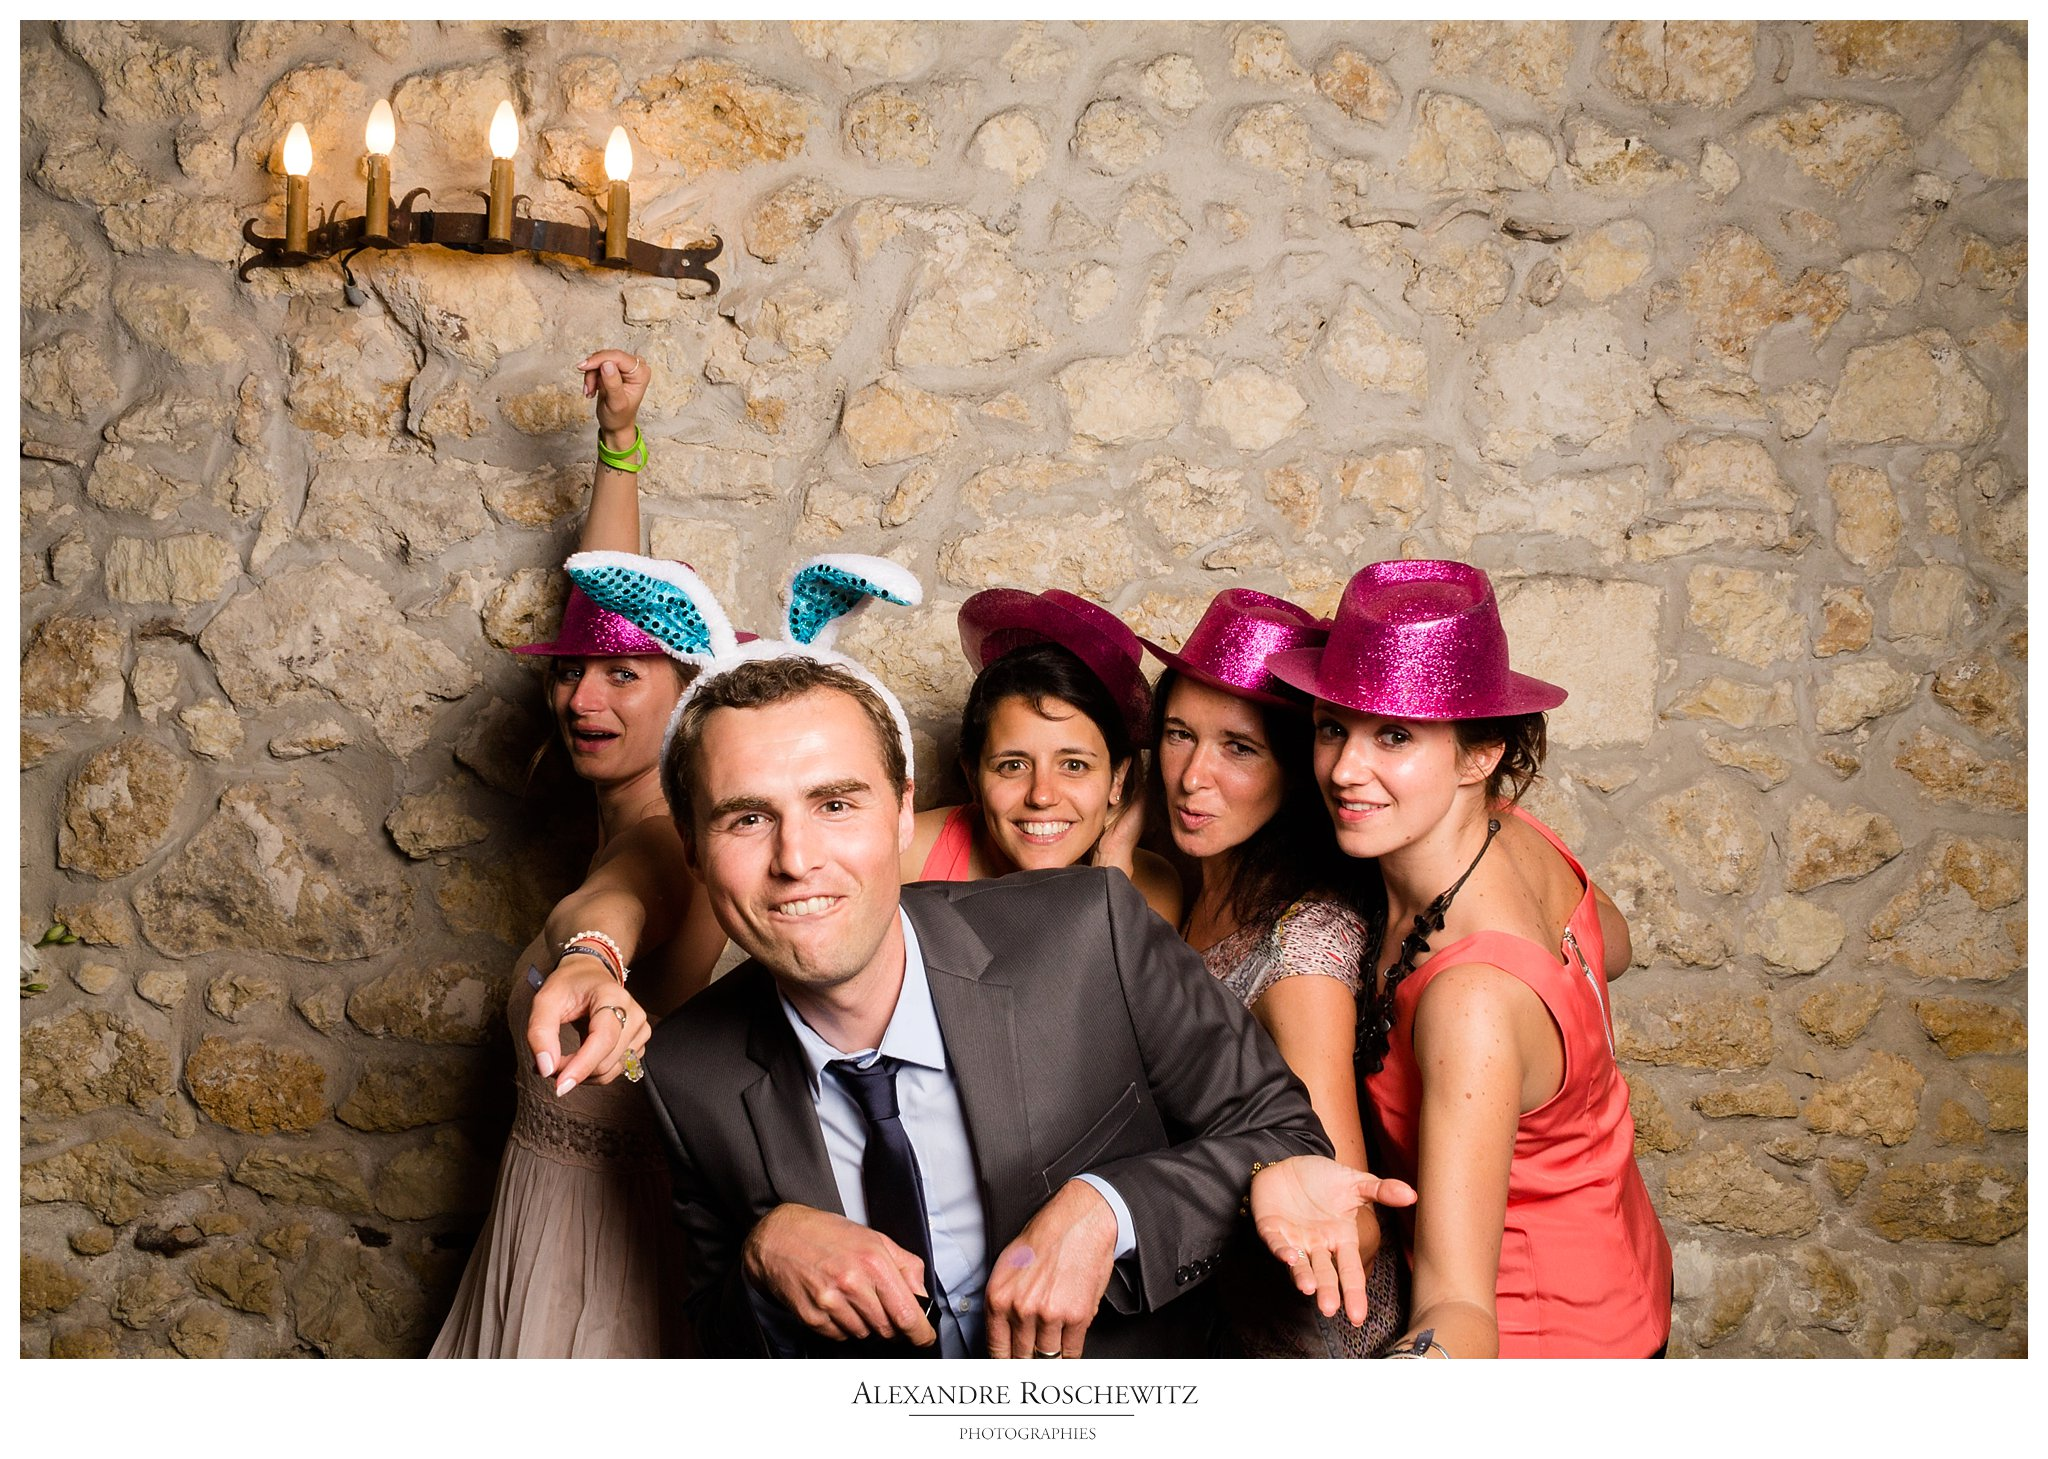 photobooth-mariage-merignac-gironde-maud-anthony-chateau-cujac-alexandre-roschewitz-photographies_1631_2048px